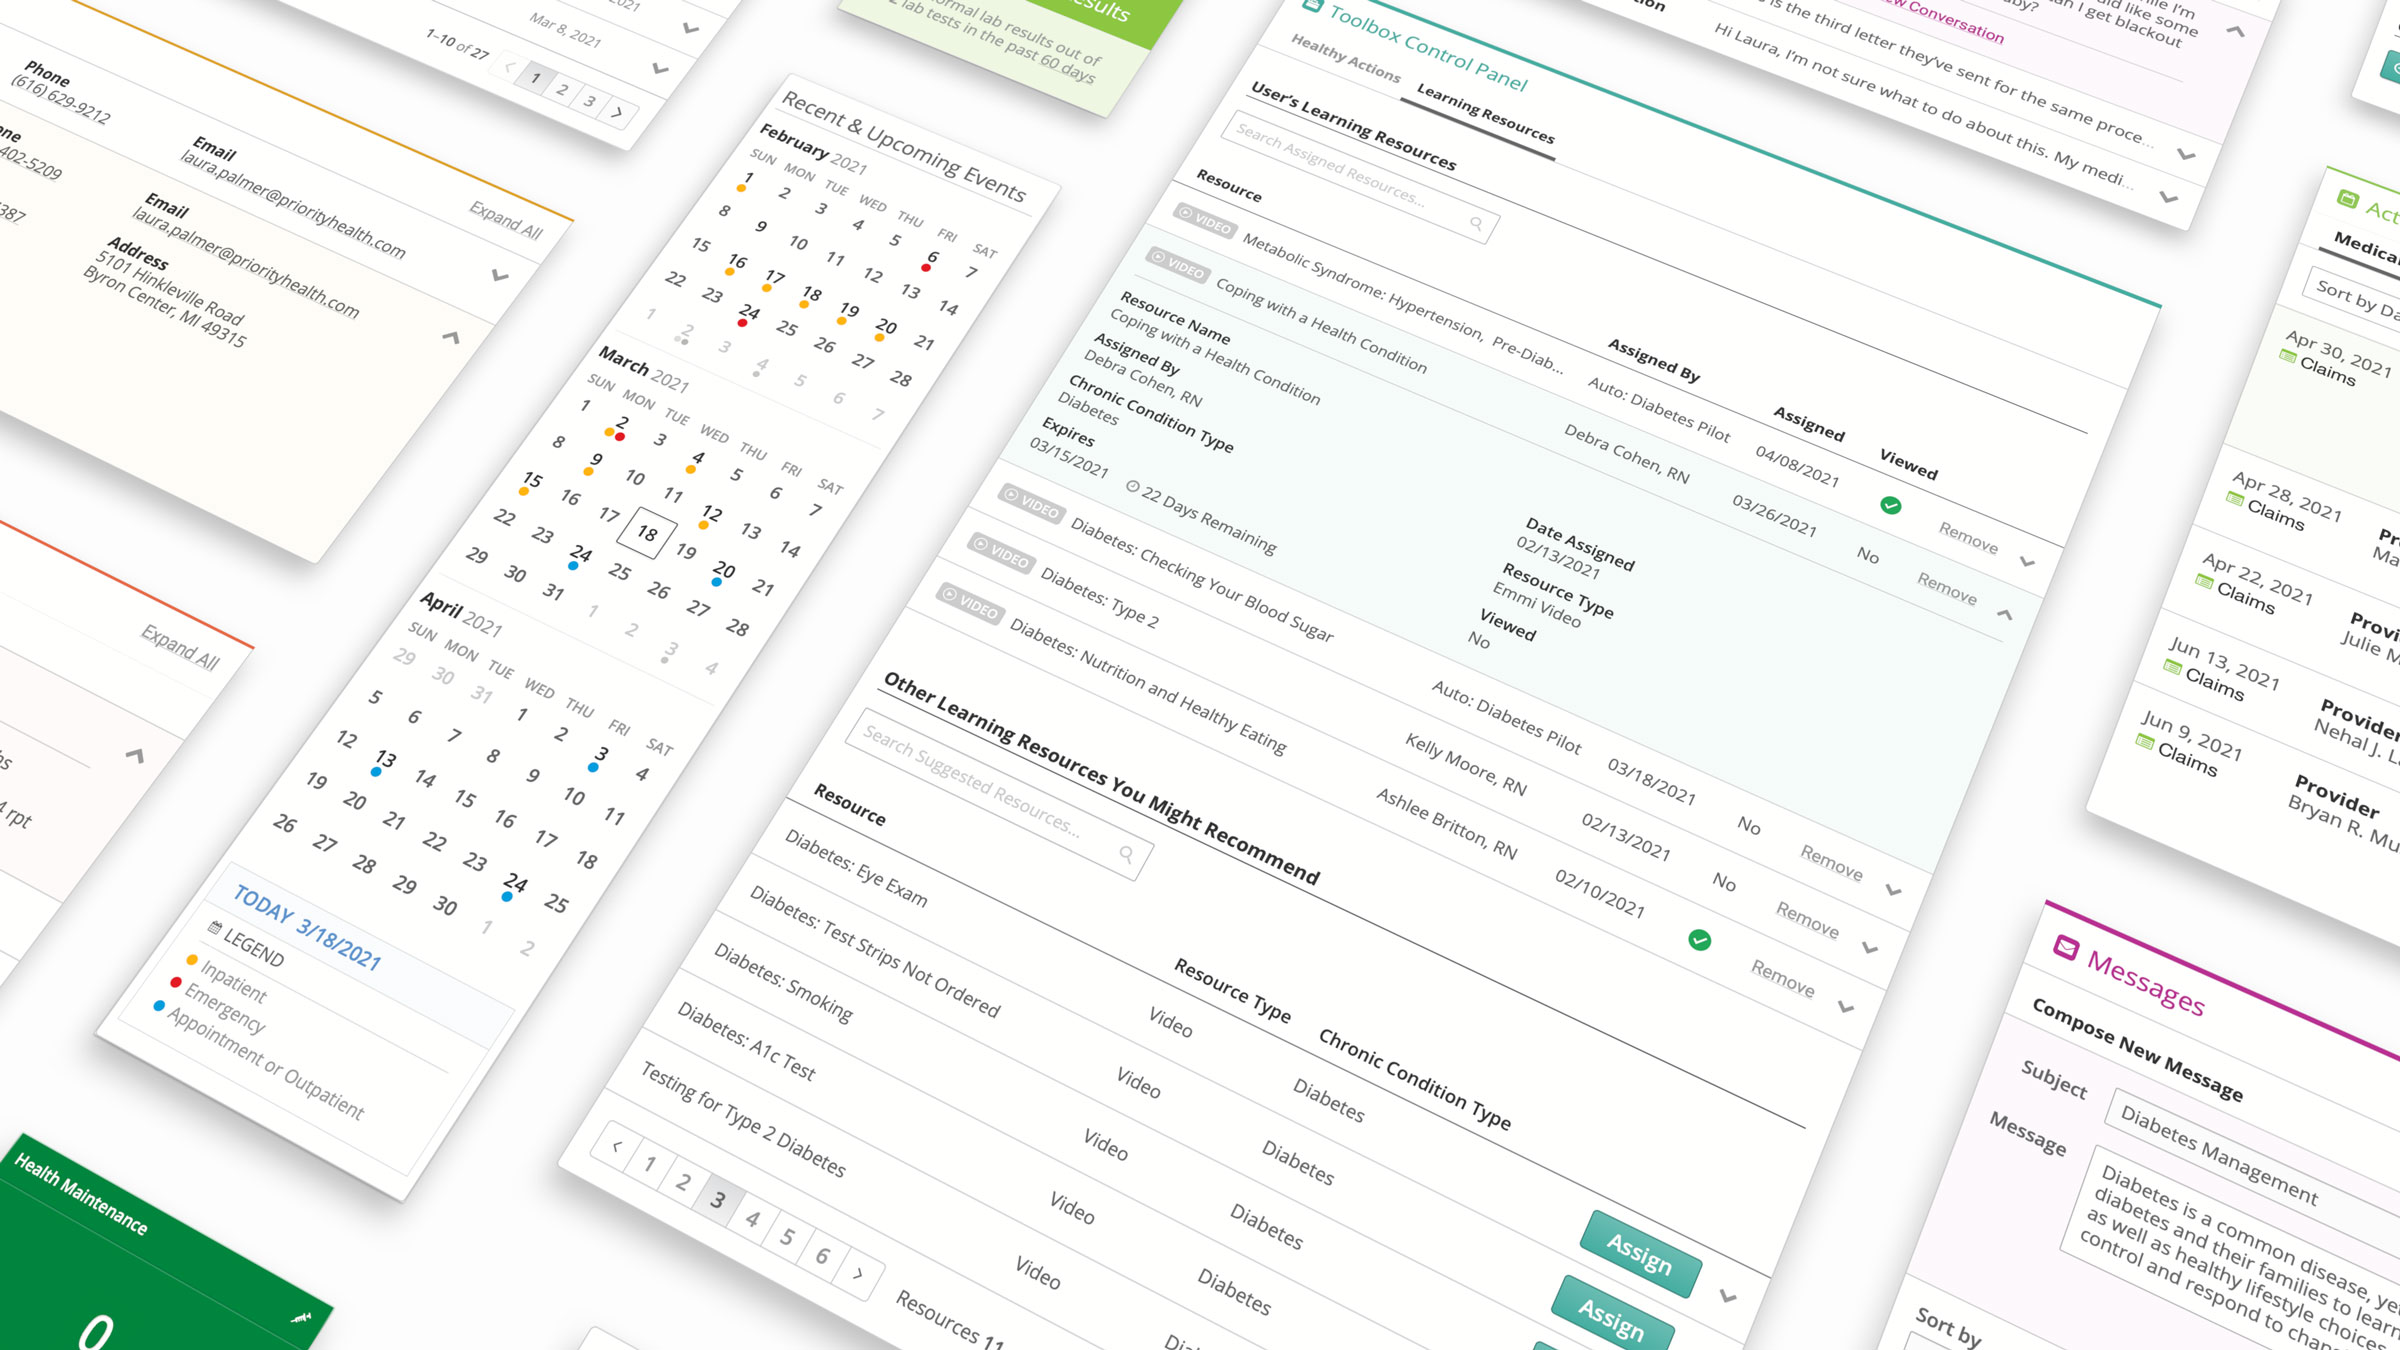 Various screenshots of the health care manager software.